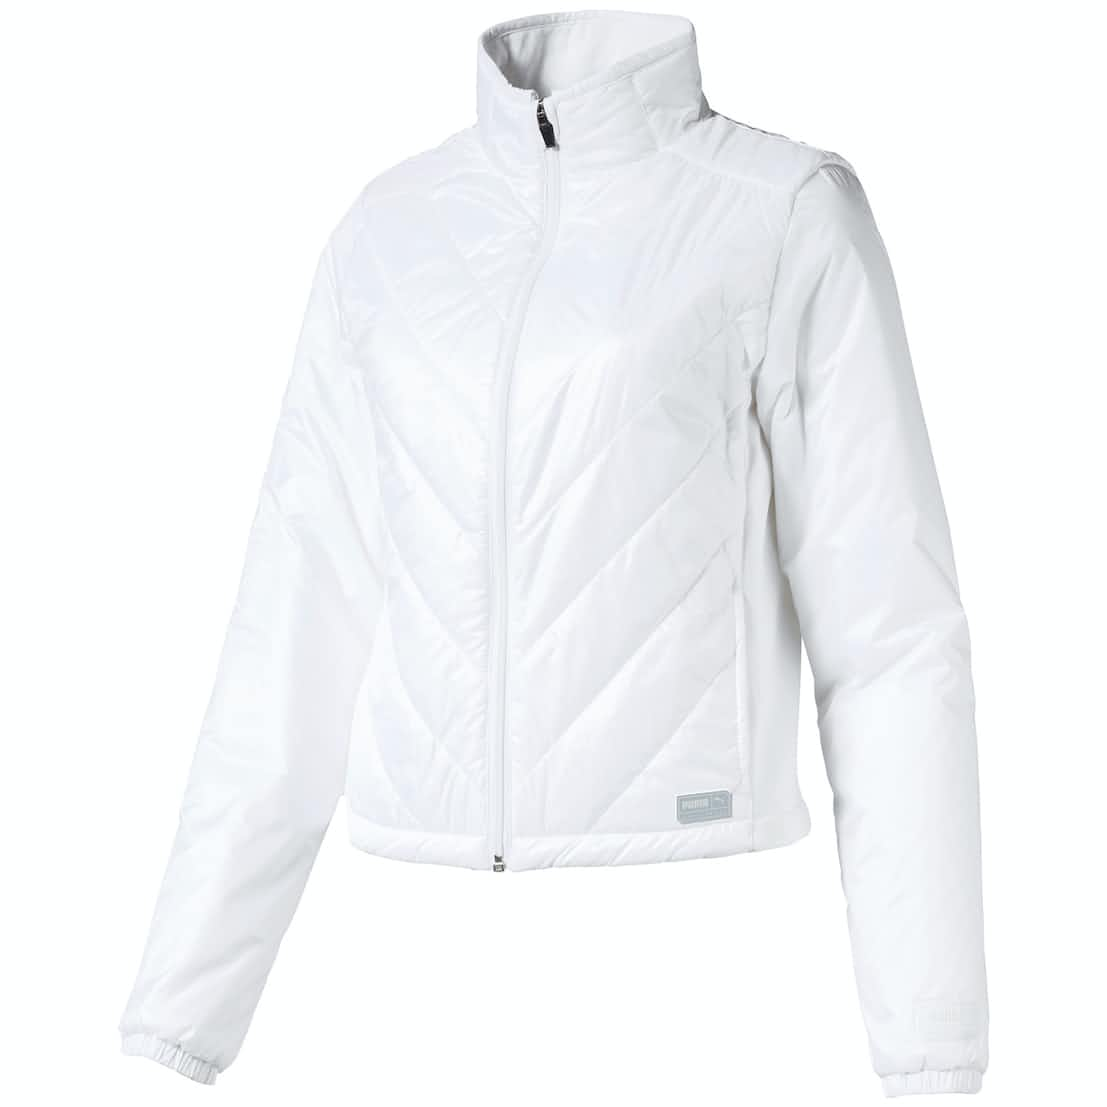 Womens Quilted Primaloft Jacket Bright White - AW19